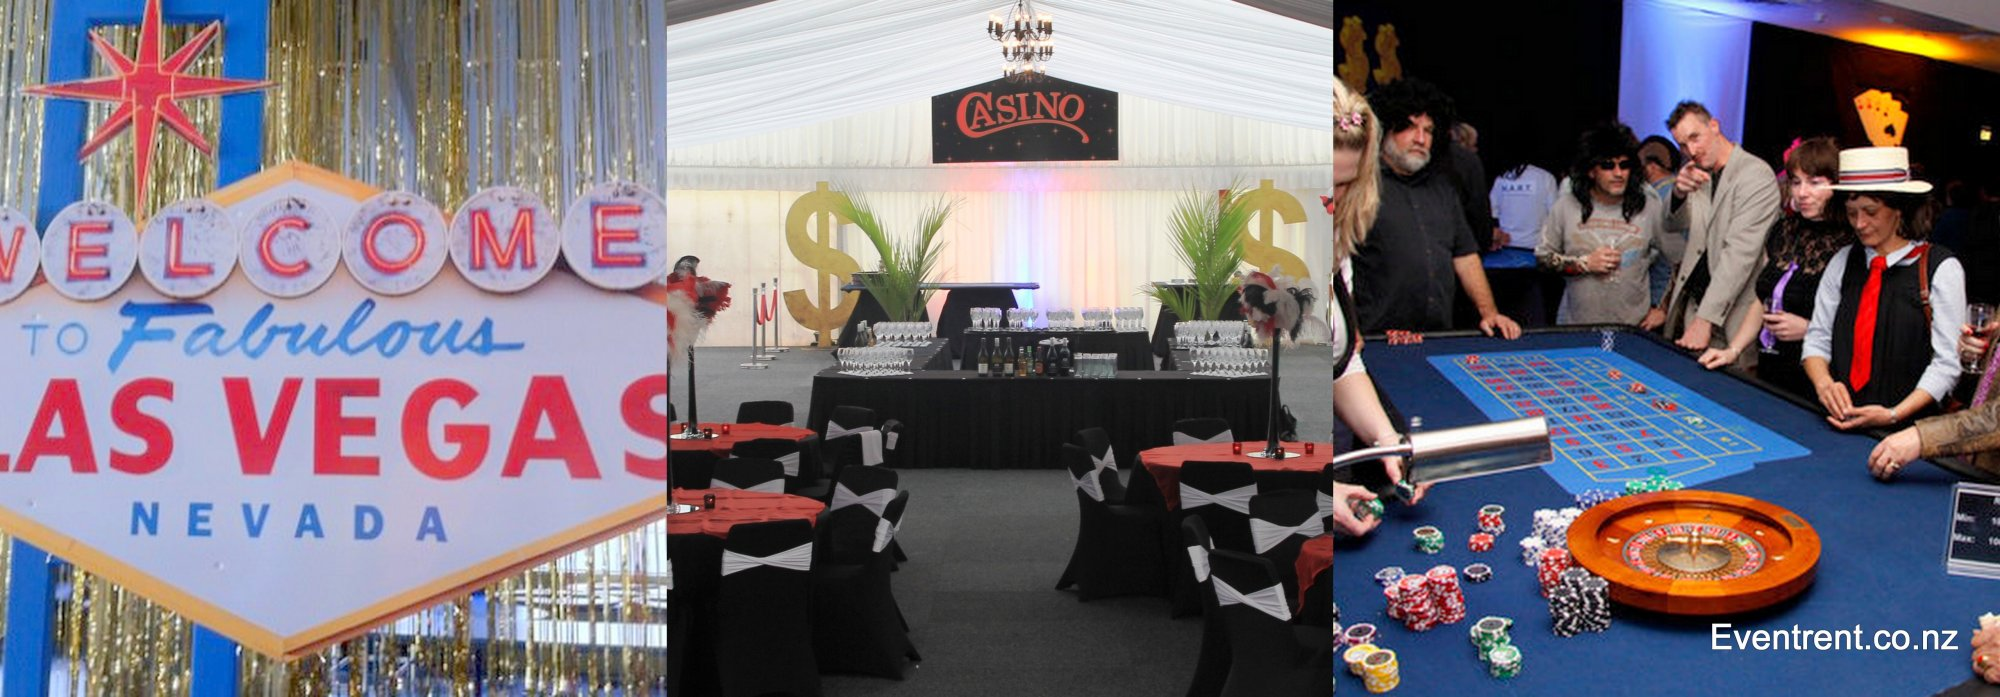 Event Theming - Casino